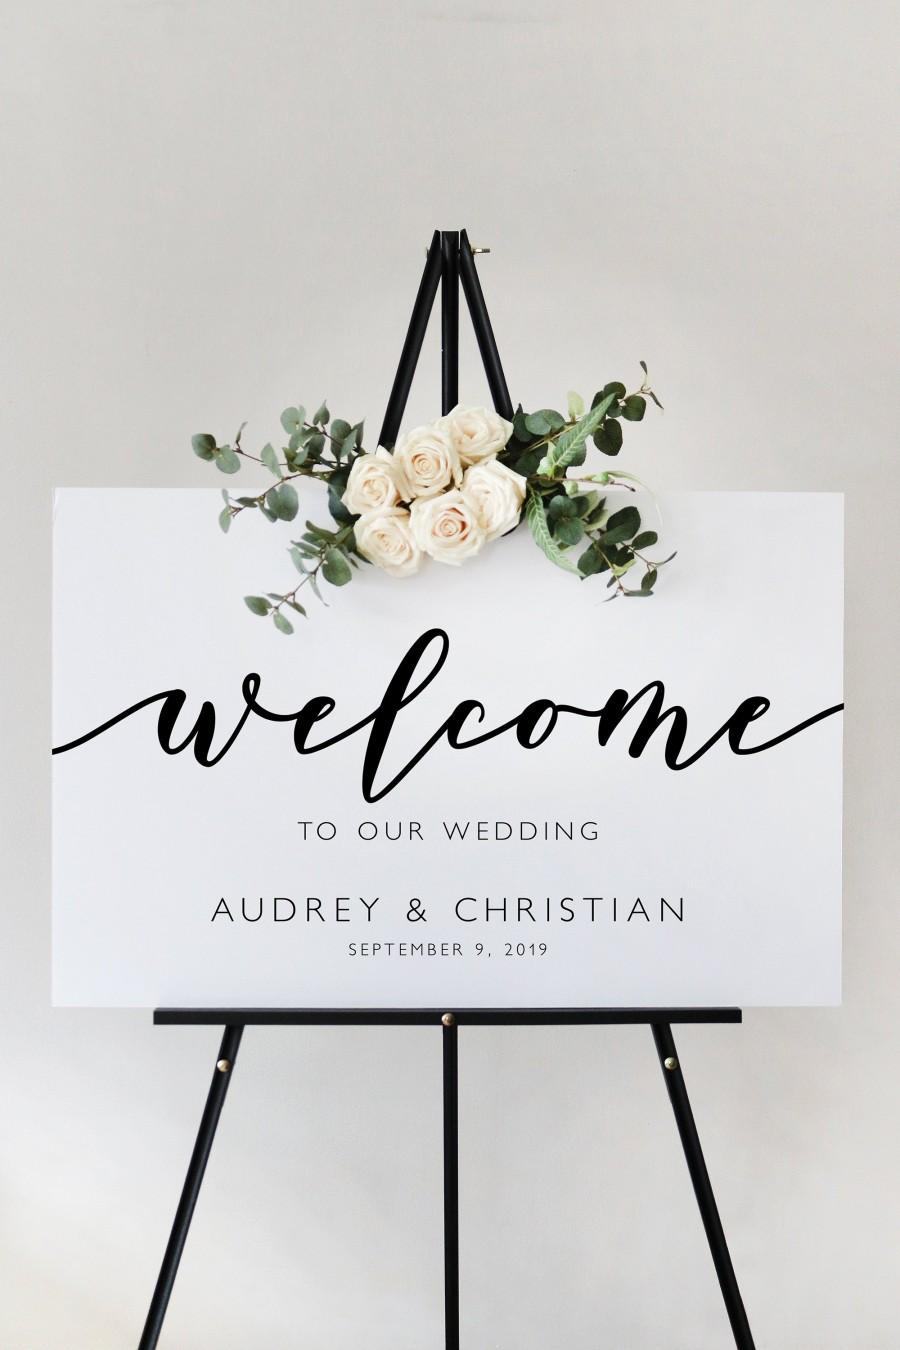 Hochzeit - Modern Script Wedding Welcome Sign Template, Ceremony Sign Reception Sign Printable, Instant Download, Editable and Customizable MR27 MRV27